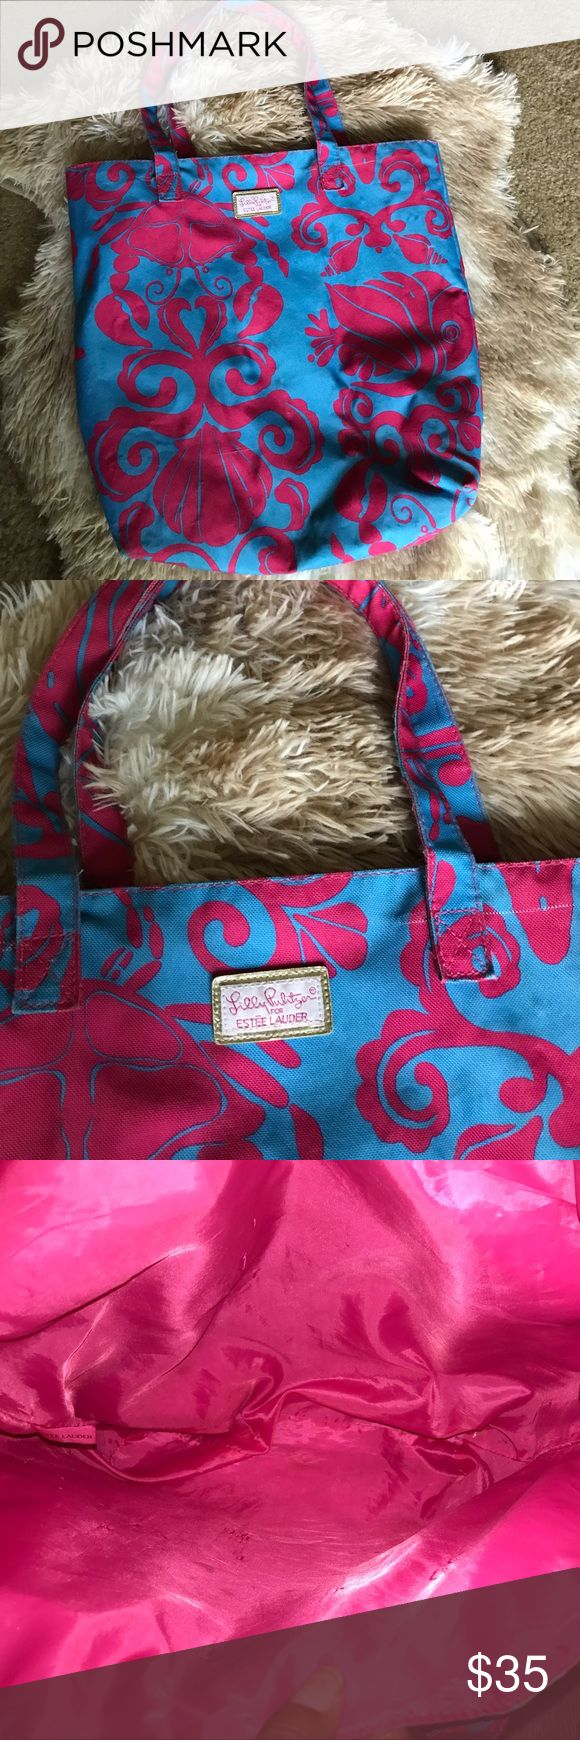 Lilly Pulitzer tote Used twice beautiful design clean interior Lilly Pulitzer Bags Totes